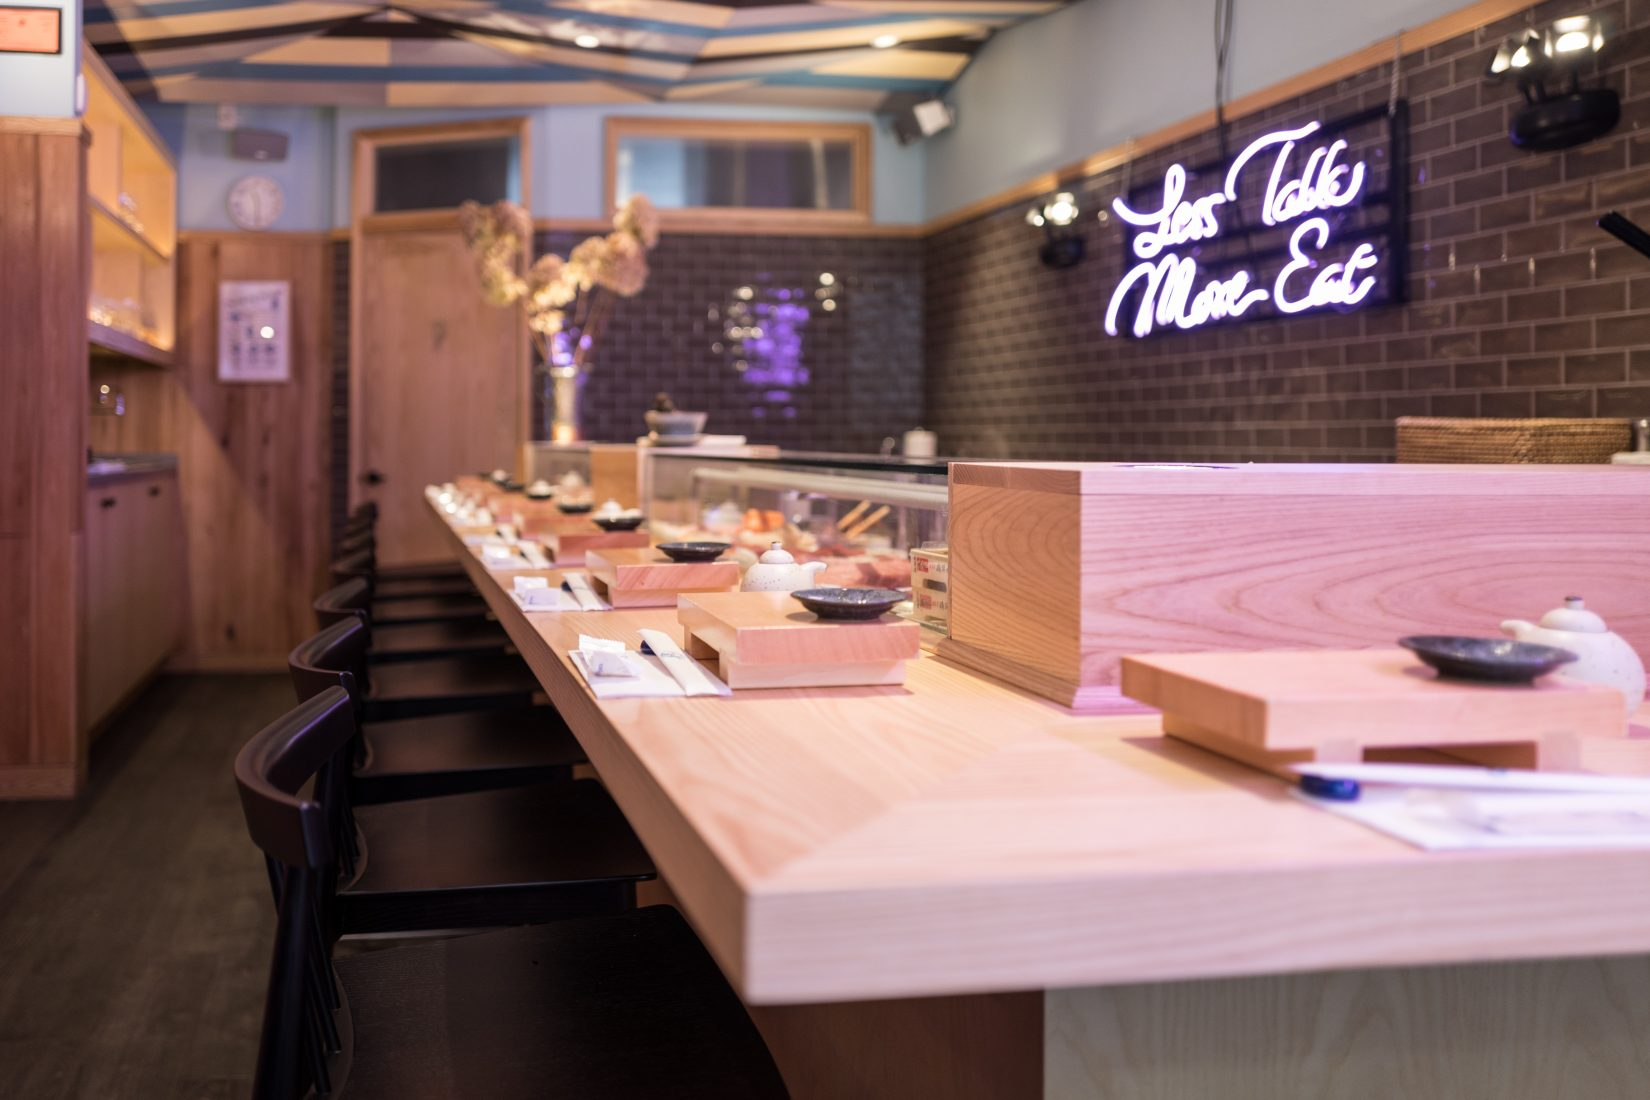 Female Sushi Chef from Japan Prepares Celestial Inspired Meal at Sushi on Jones